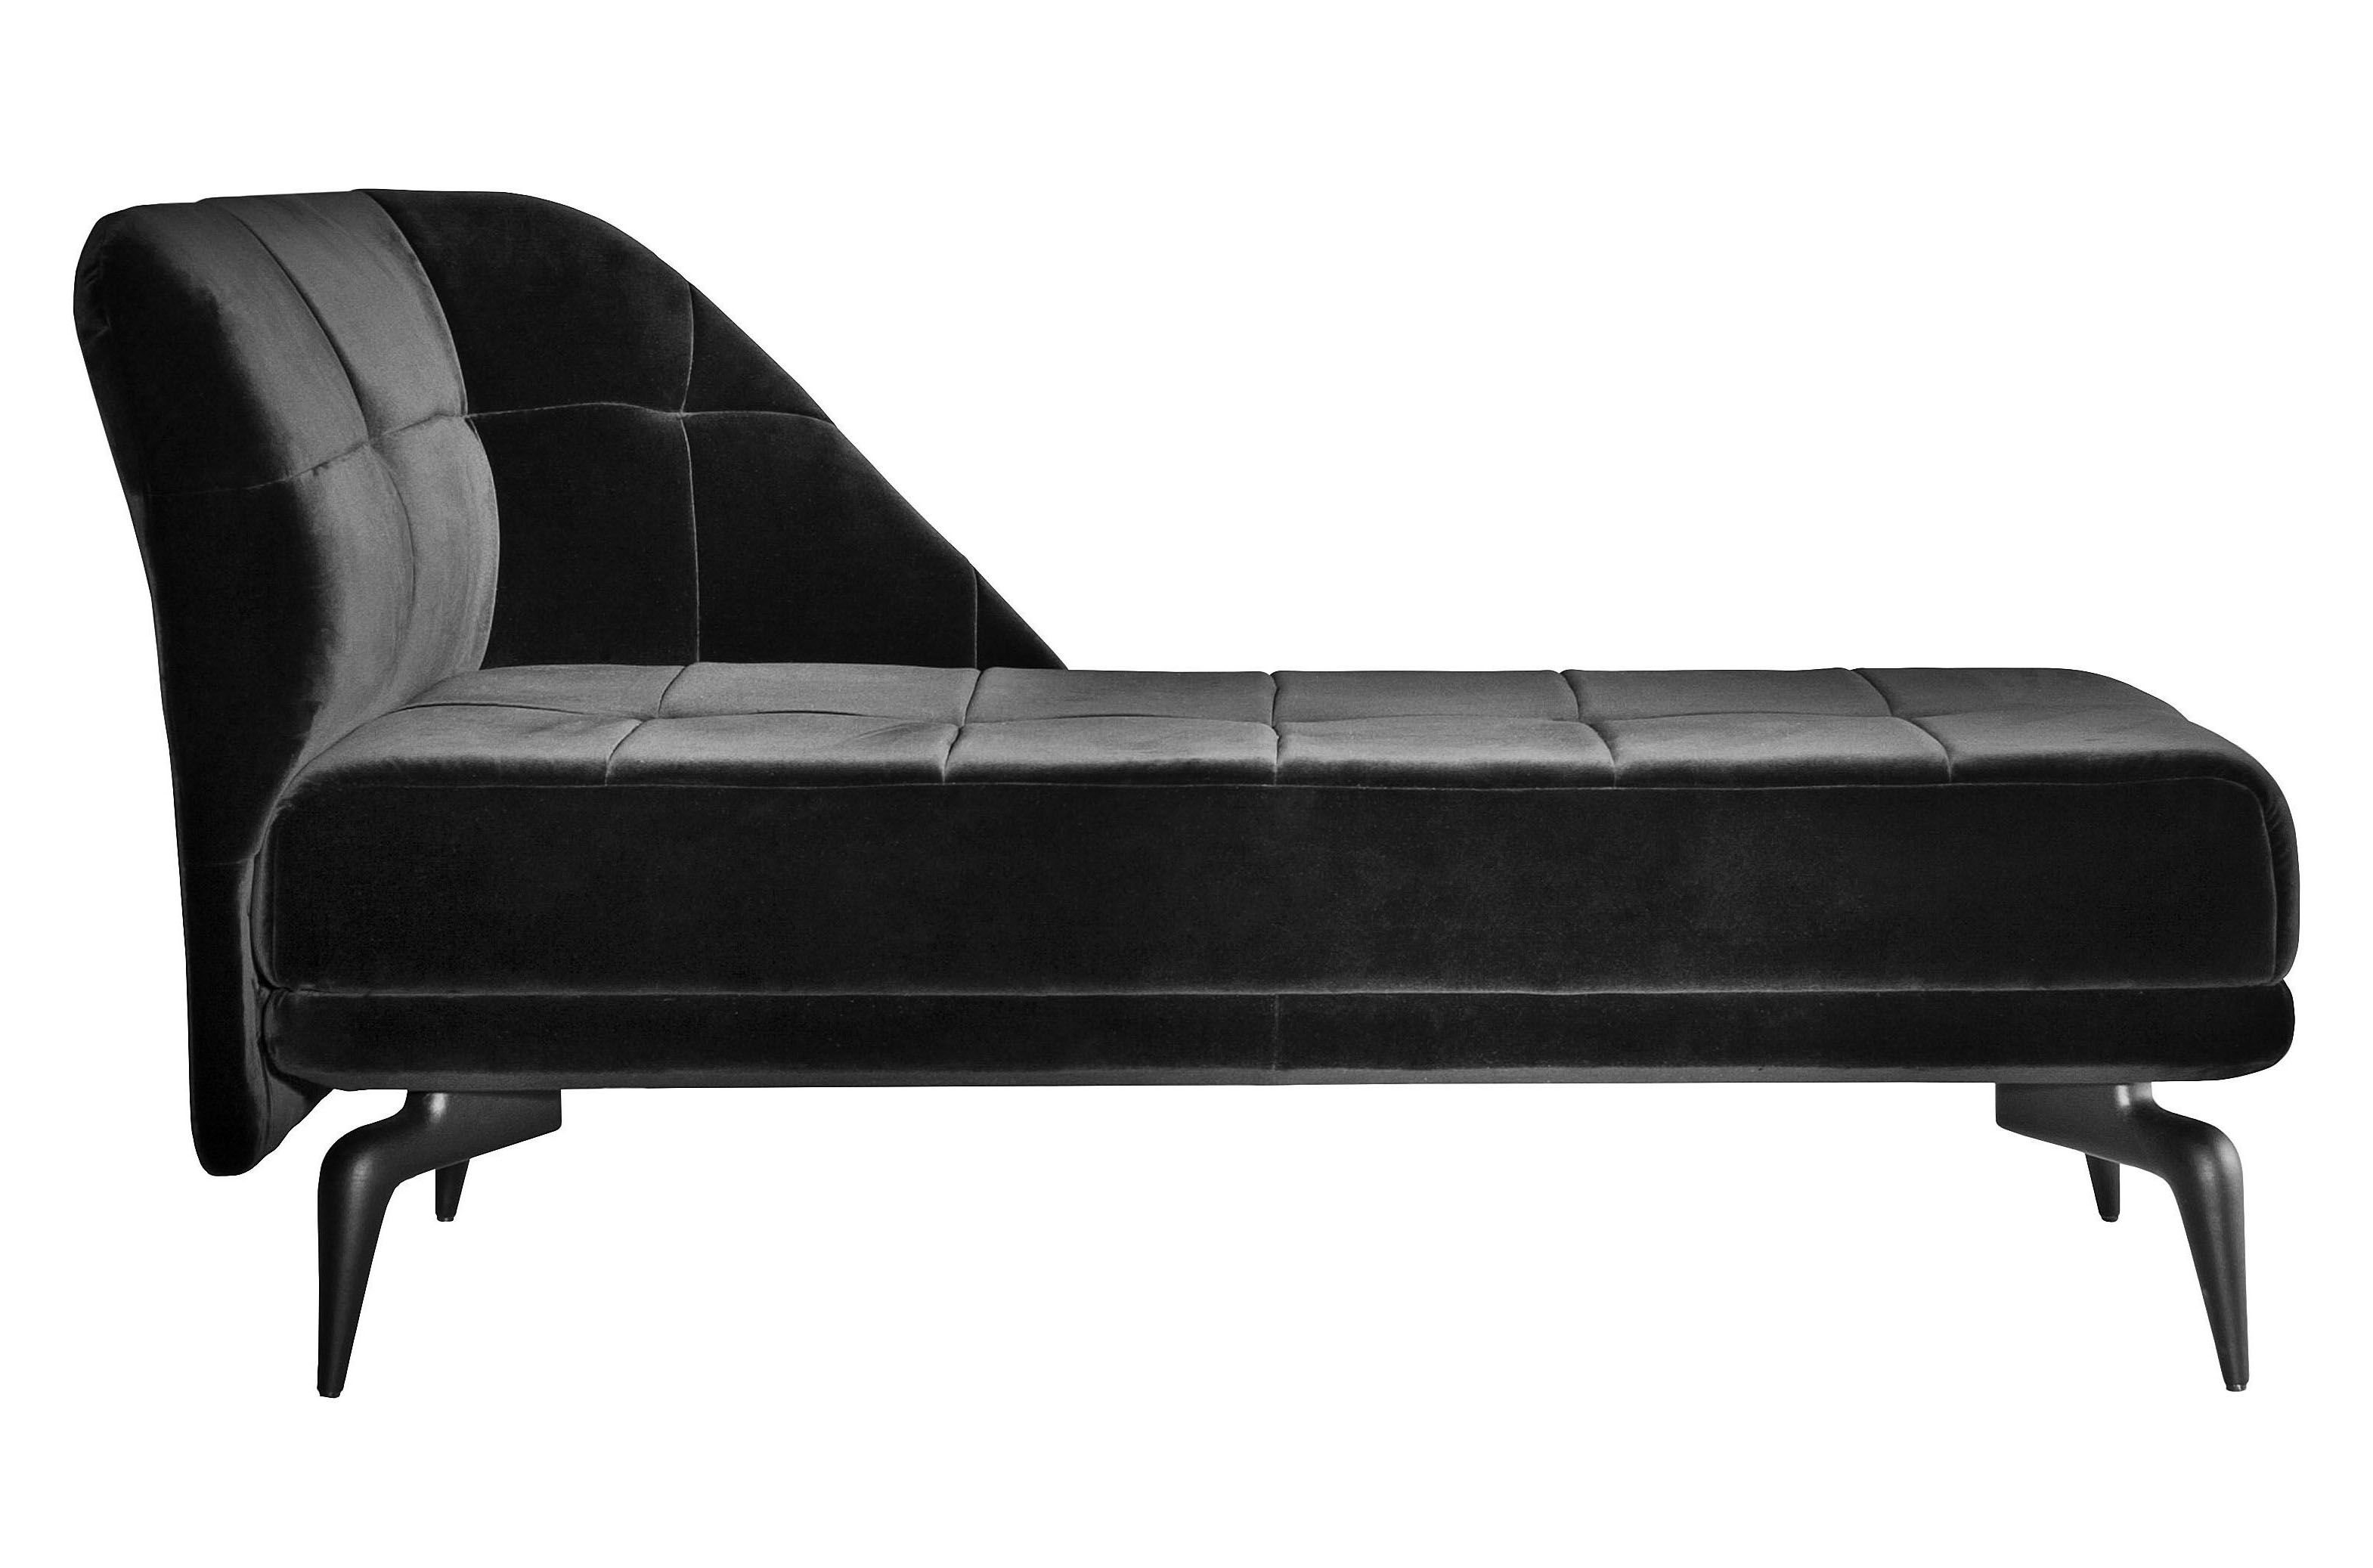 Furniture - Sofas - Leeon Sofa - Right armrest by Driade - Black velvet - Lacquered aluminium, Velvet